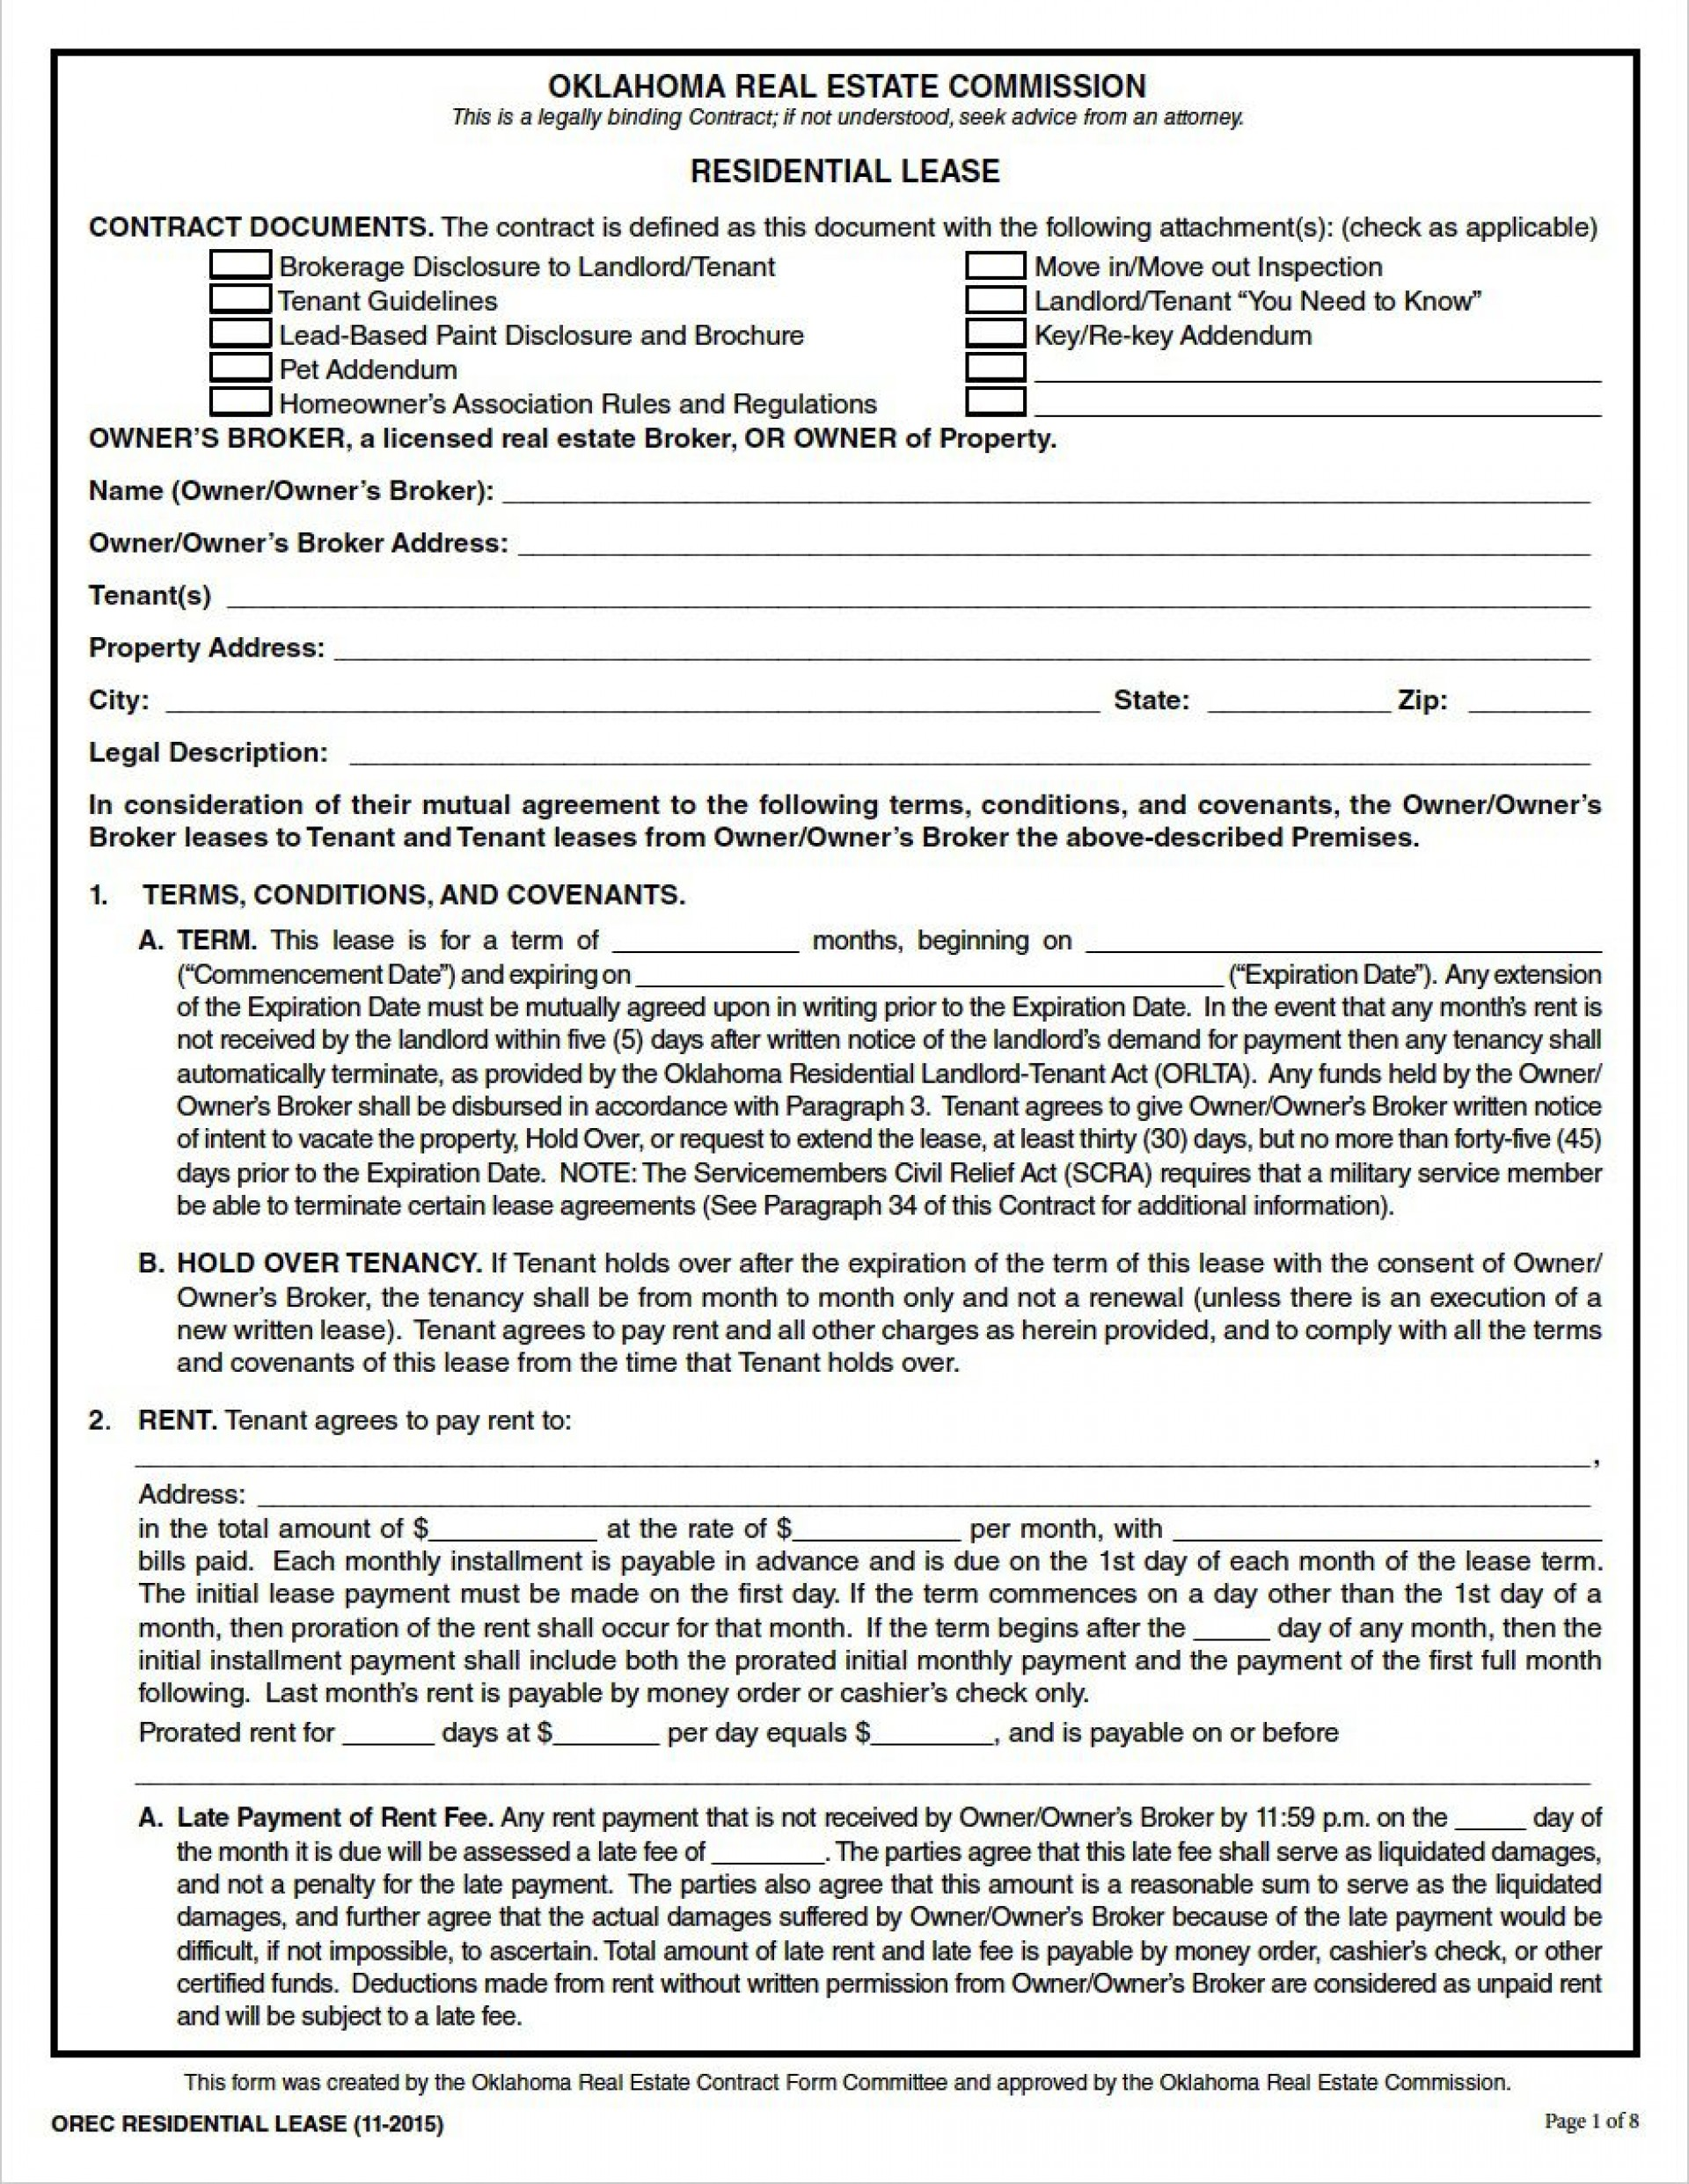 004 Impressive Renter Lease Agreement Template High Definition  Apartment Form Early Termination Of By Tenant South Africa Free1920